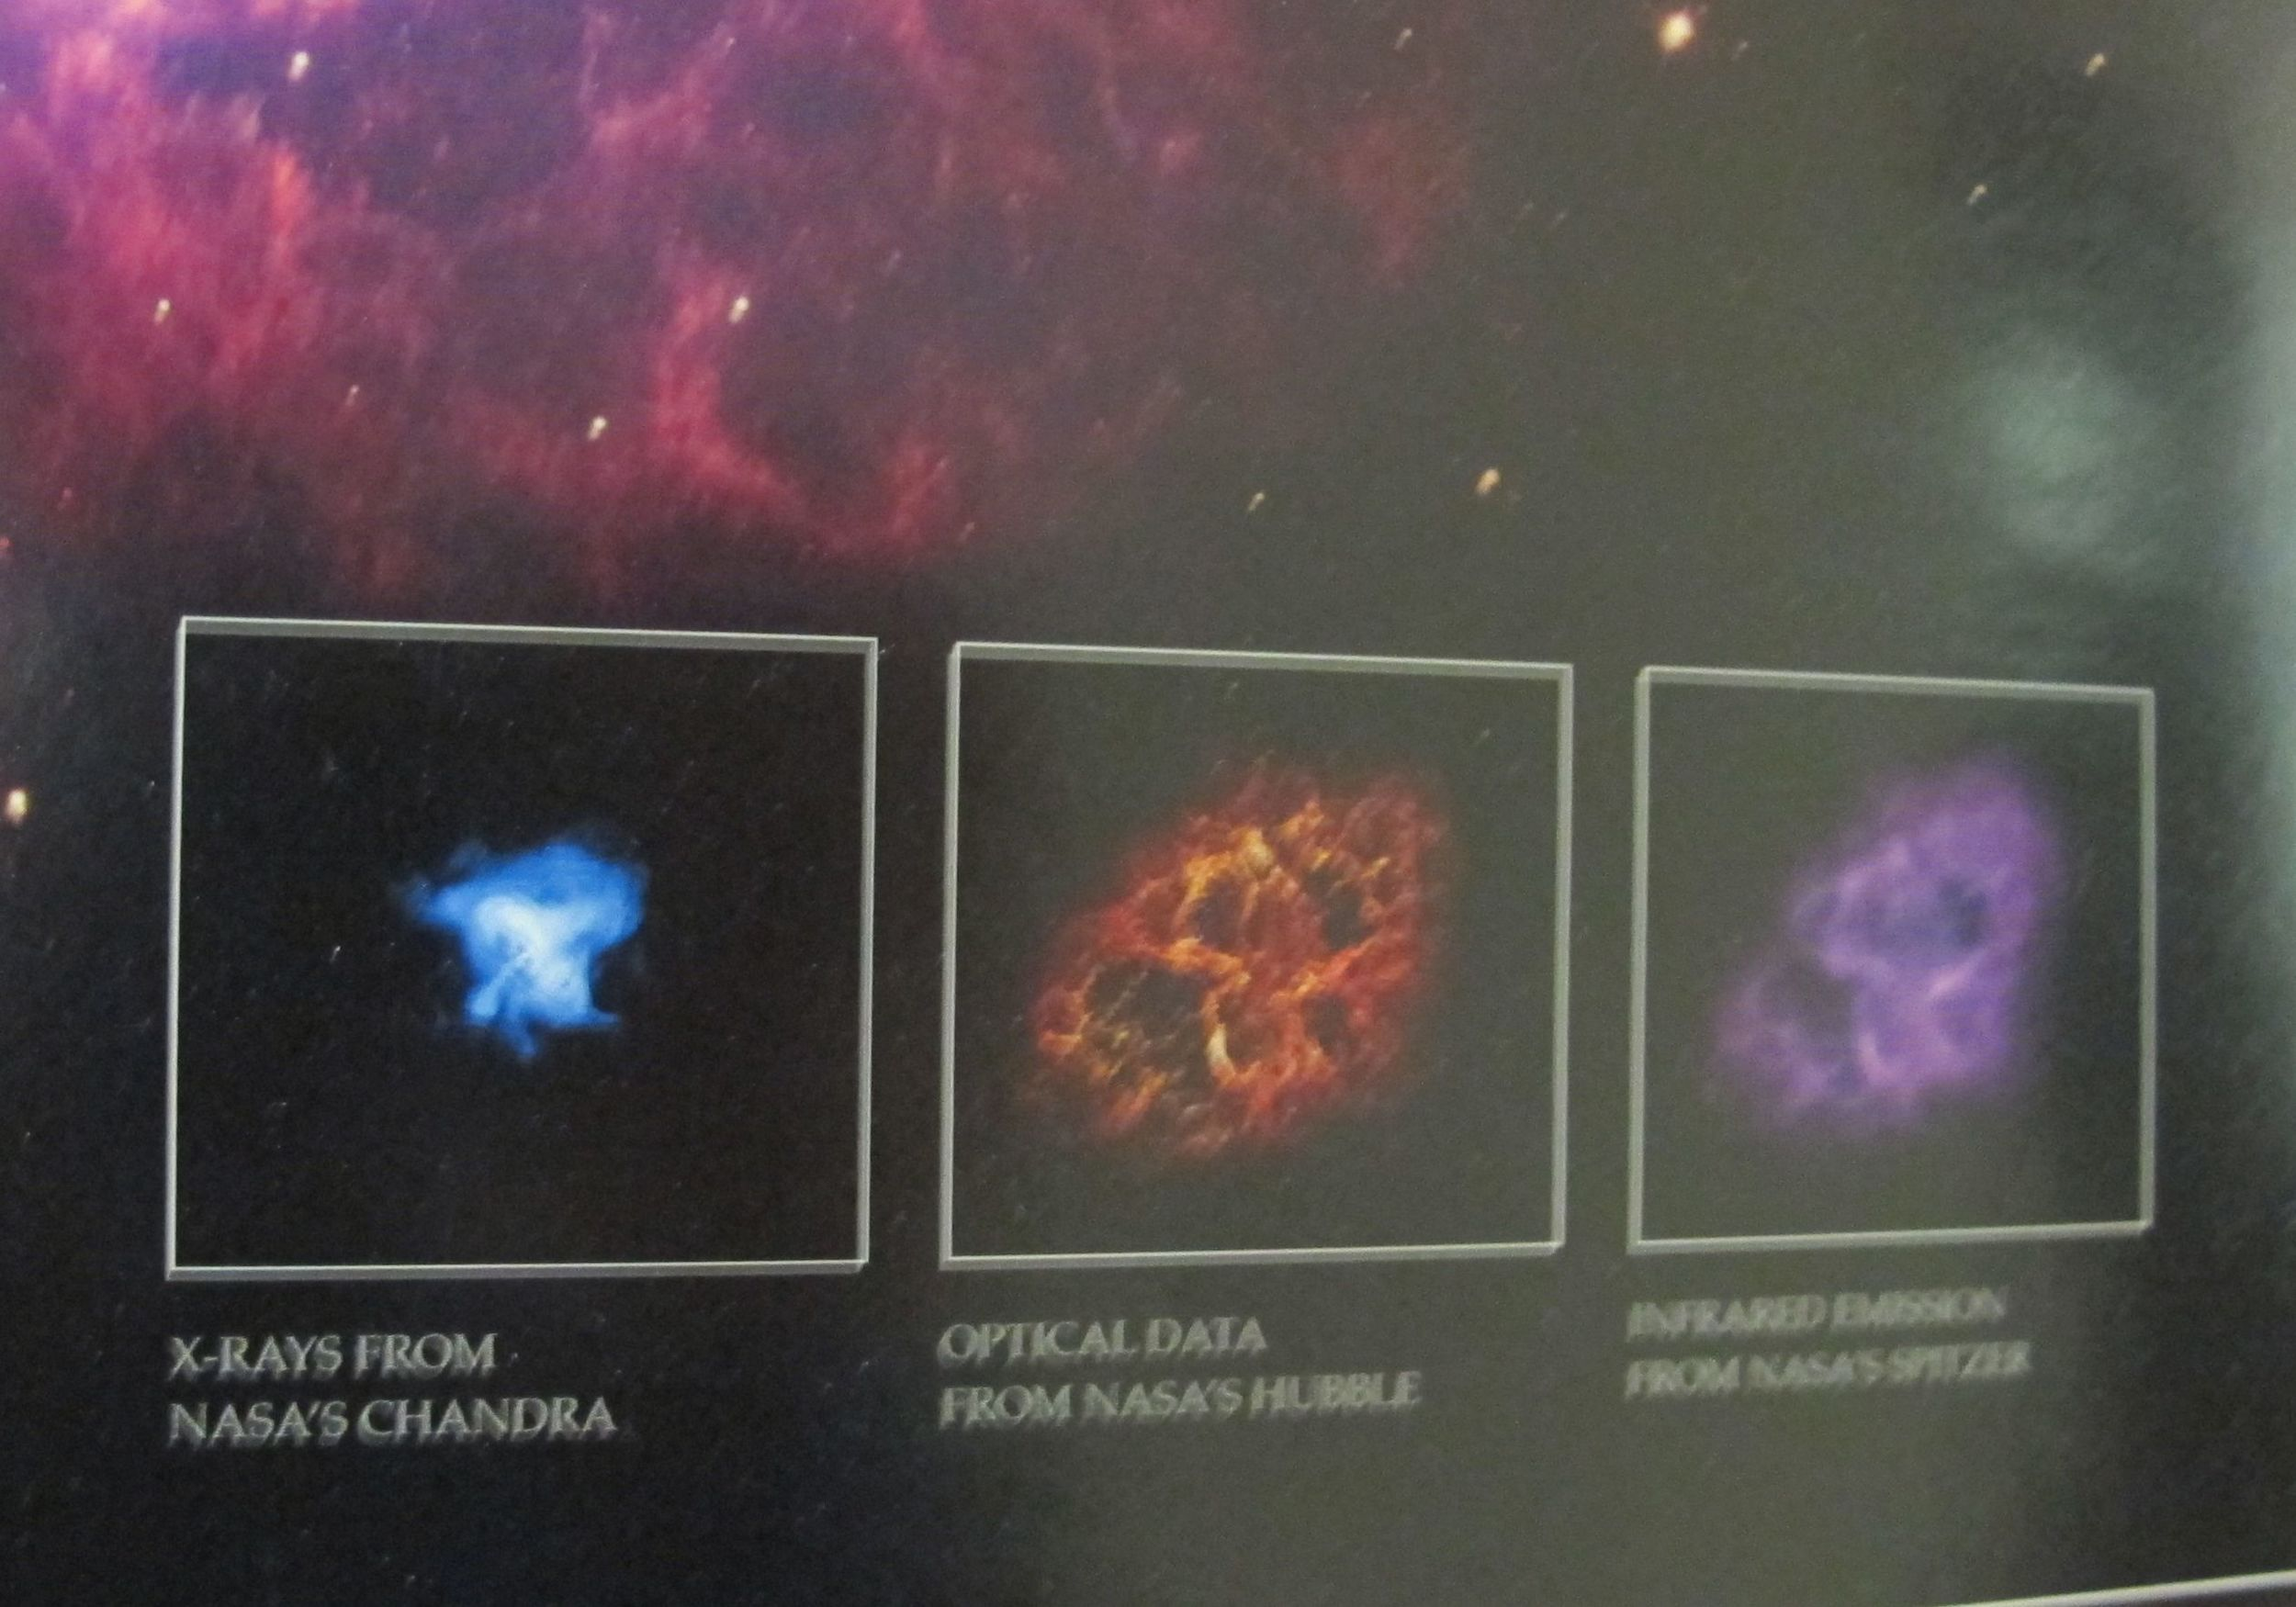 This slightly blurry shot shows the very different pictures of the Crab Nebula taken by (from left) Chandra, Hubble and Spitzer, NASA's three Great Observatories in the sky.